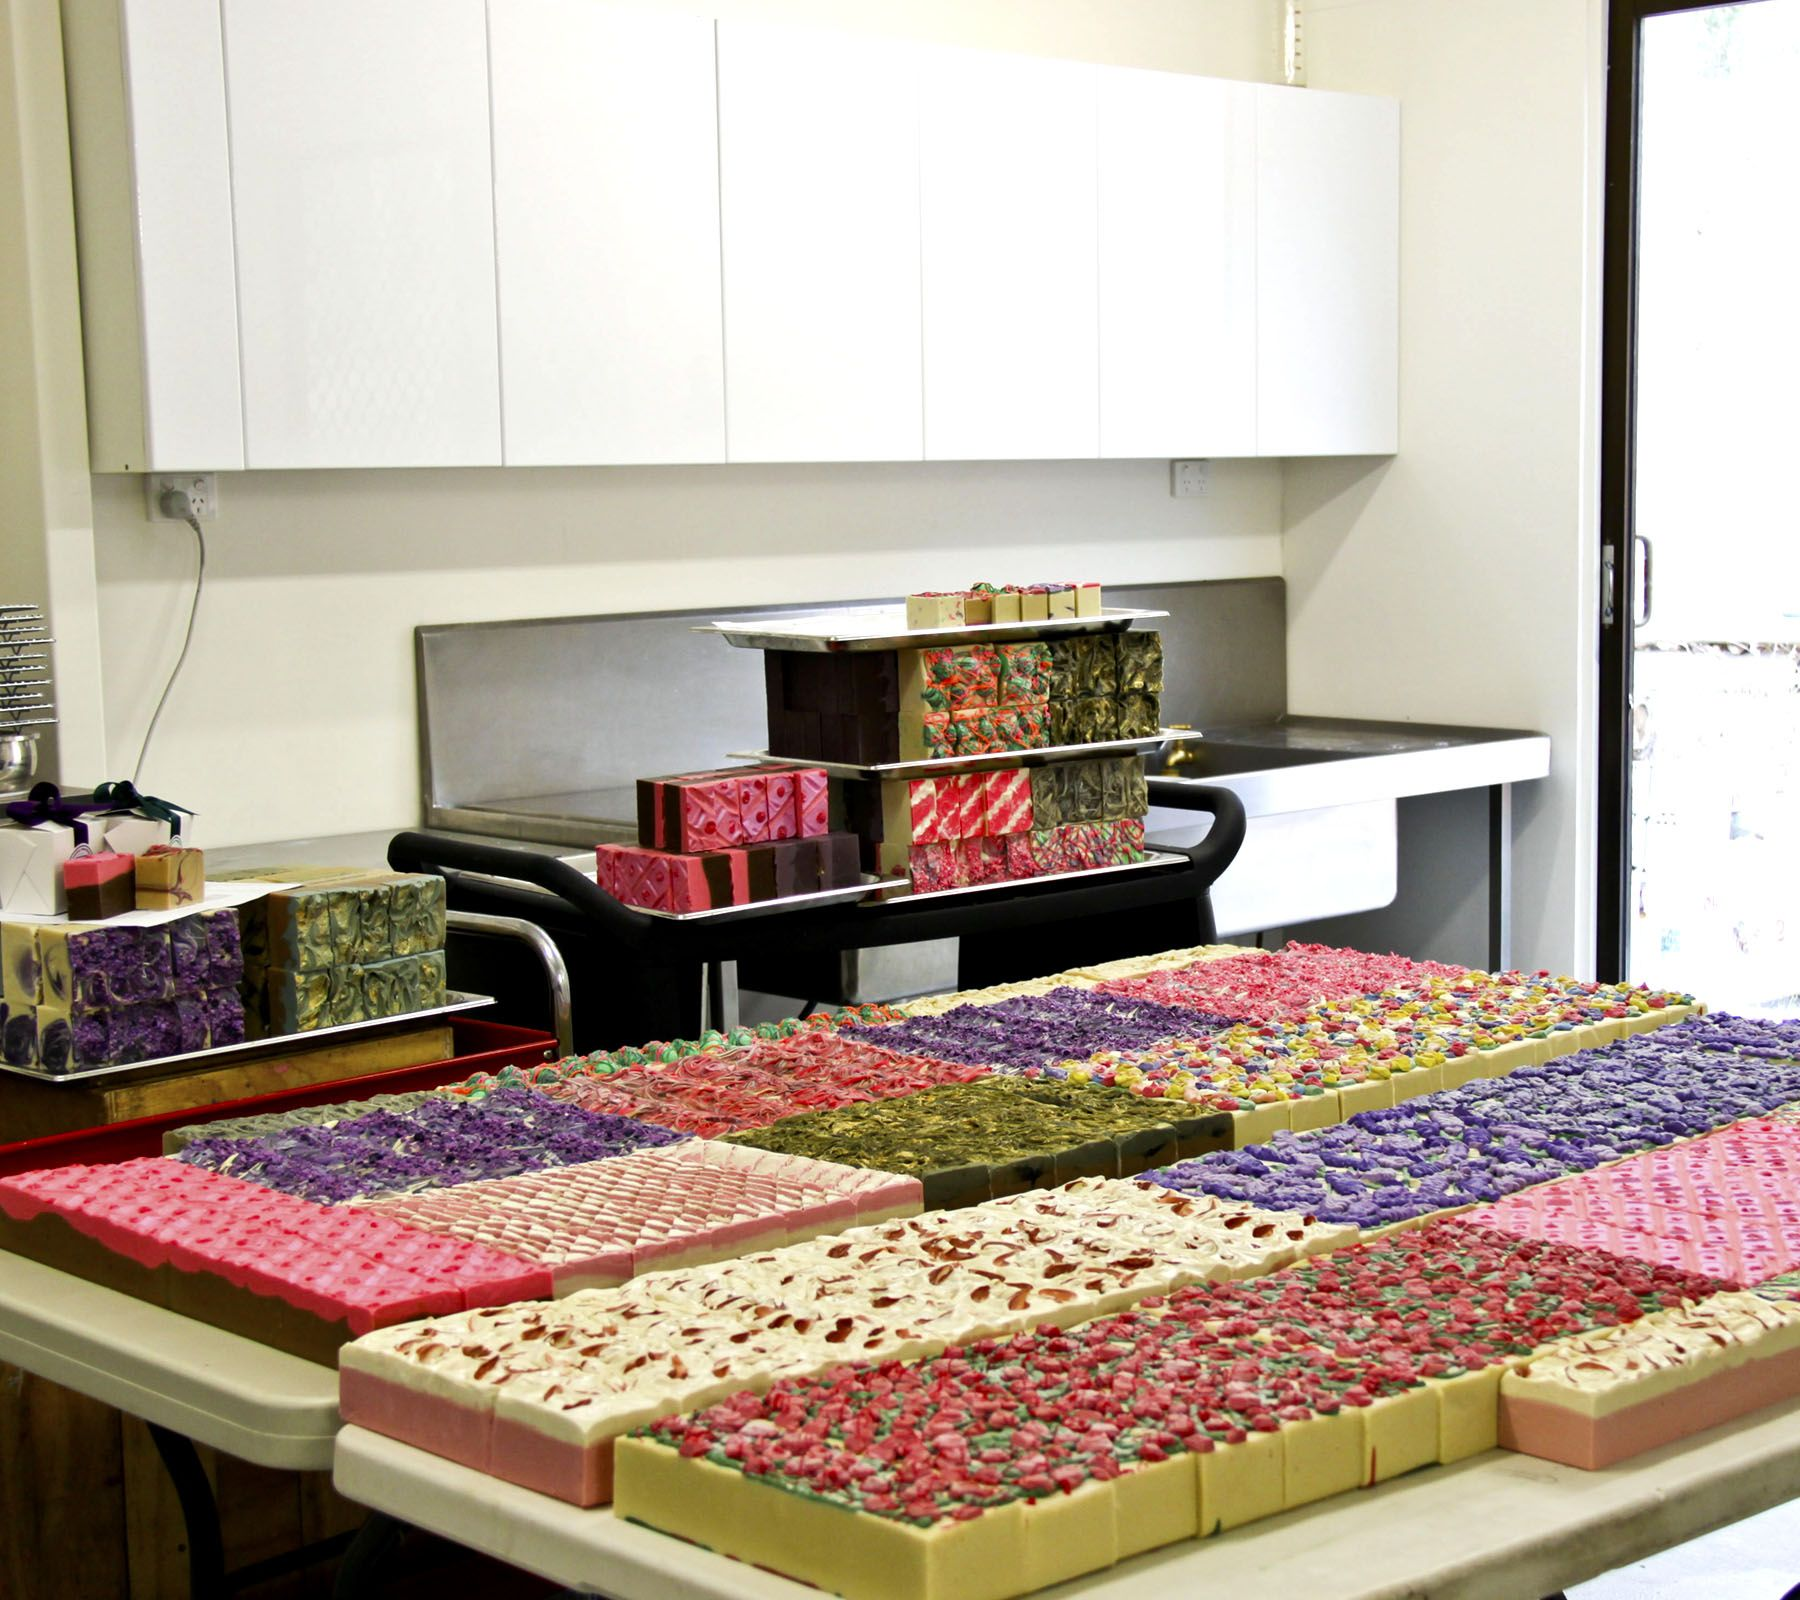 Part of the soap workshop at www.platypusdreams.com.au